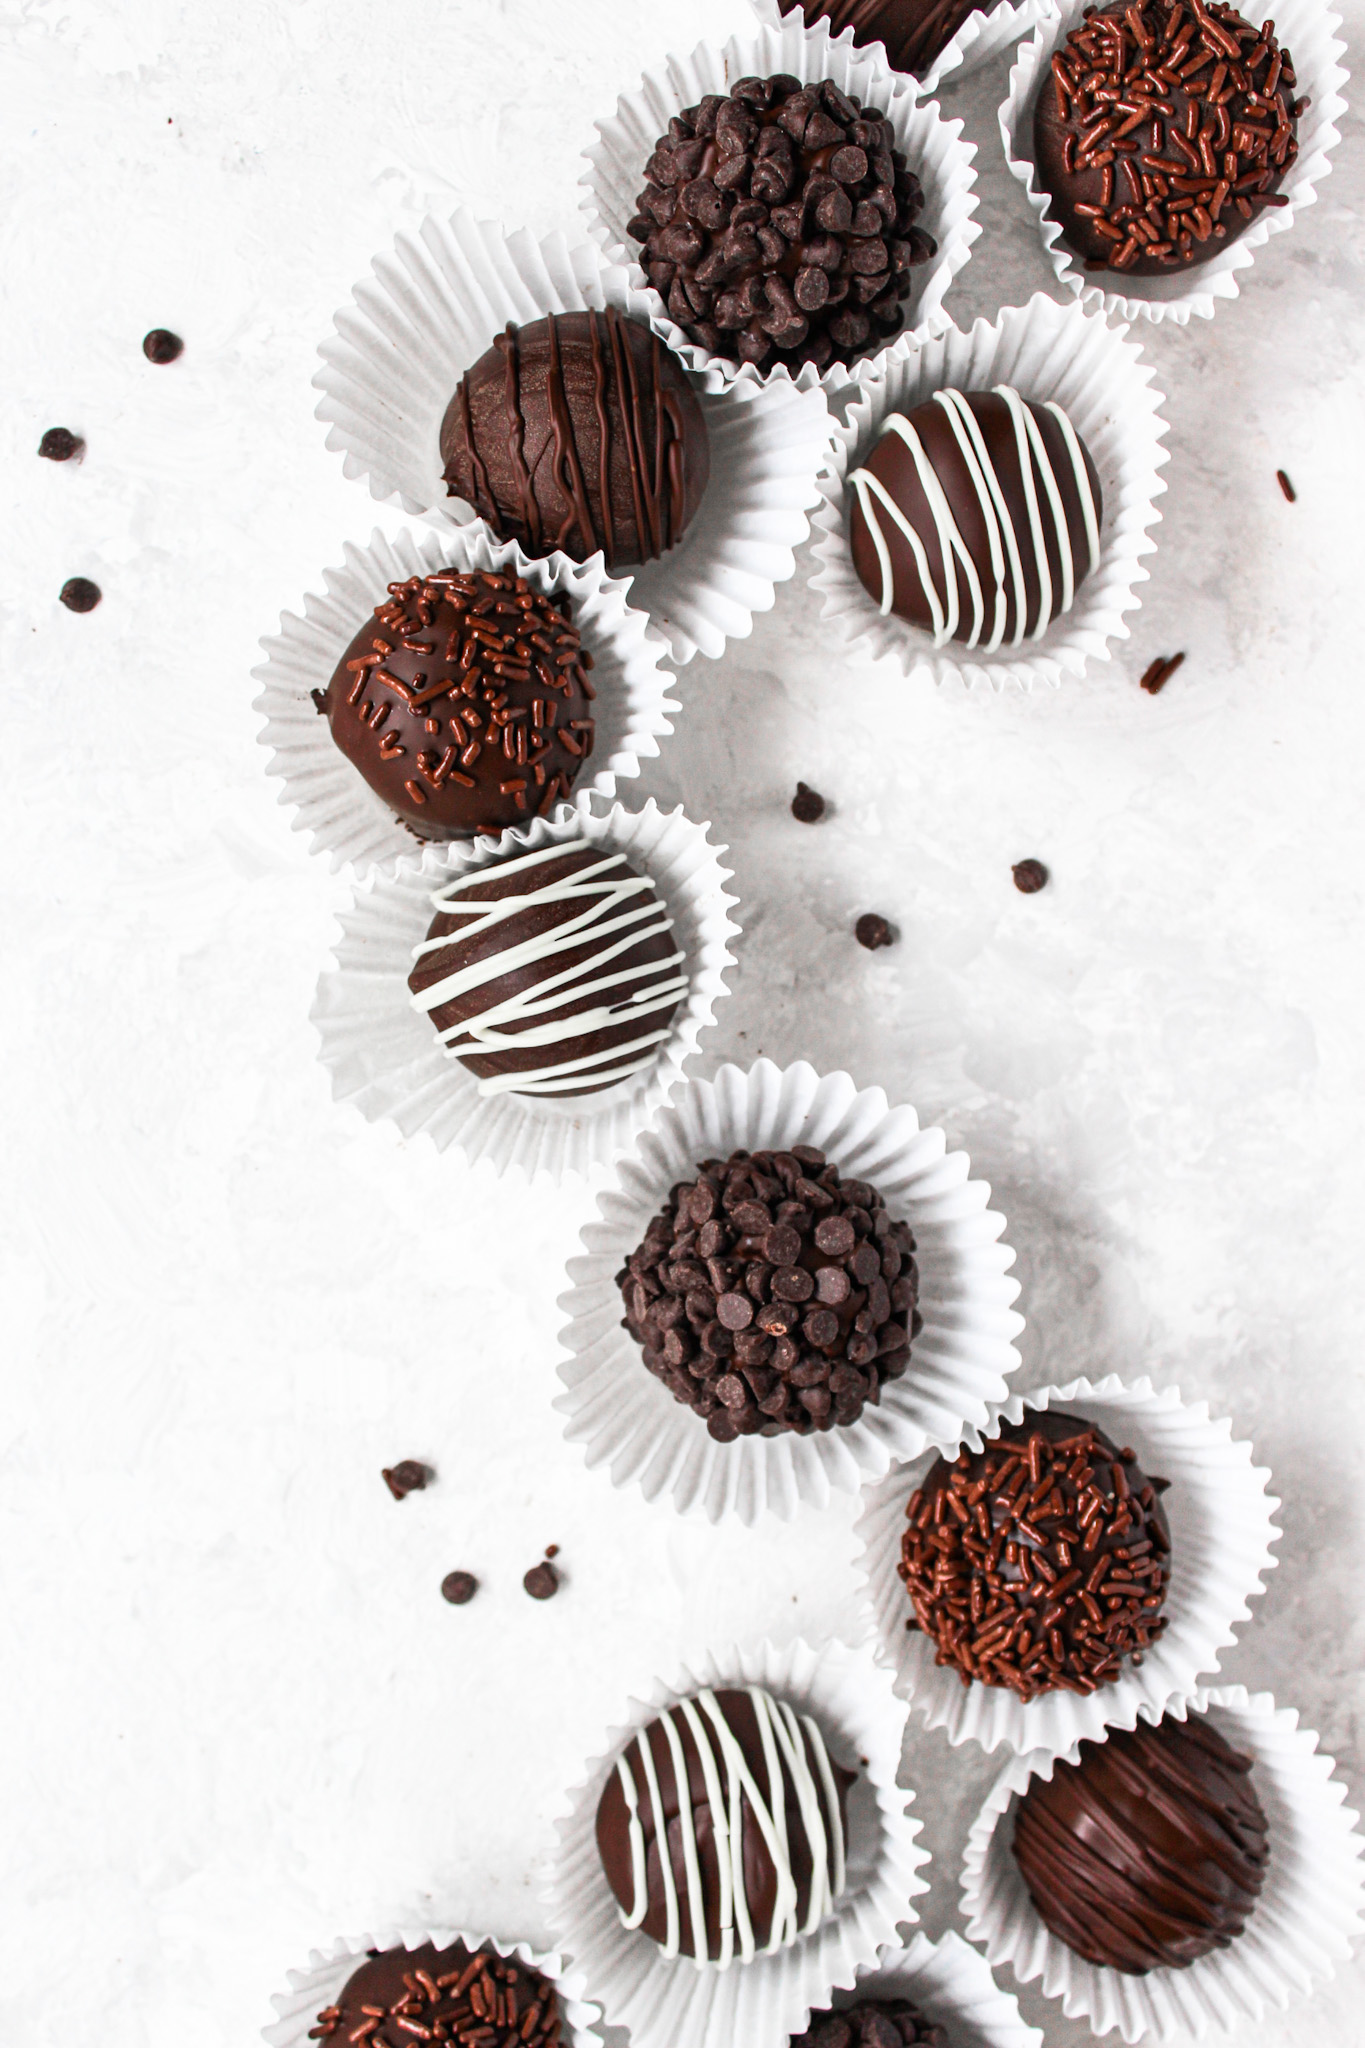 Flatlay of chocolate truffles in a curved line with mini chocolate chips around it